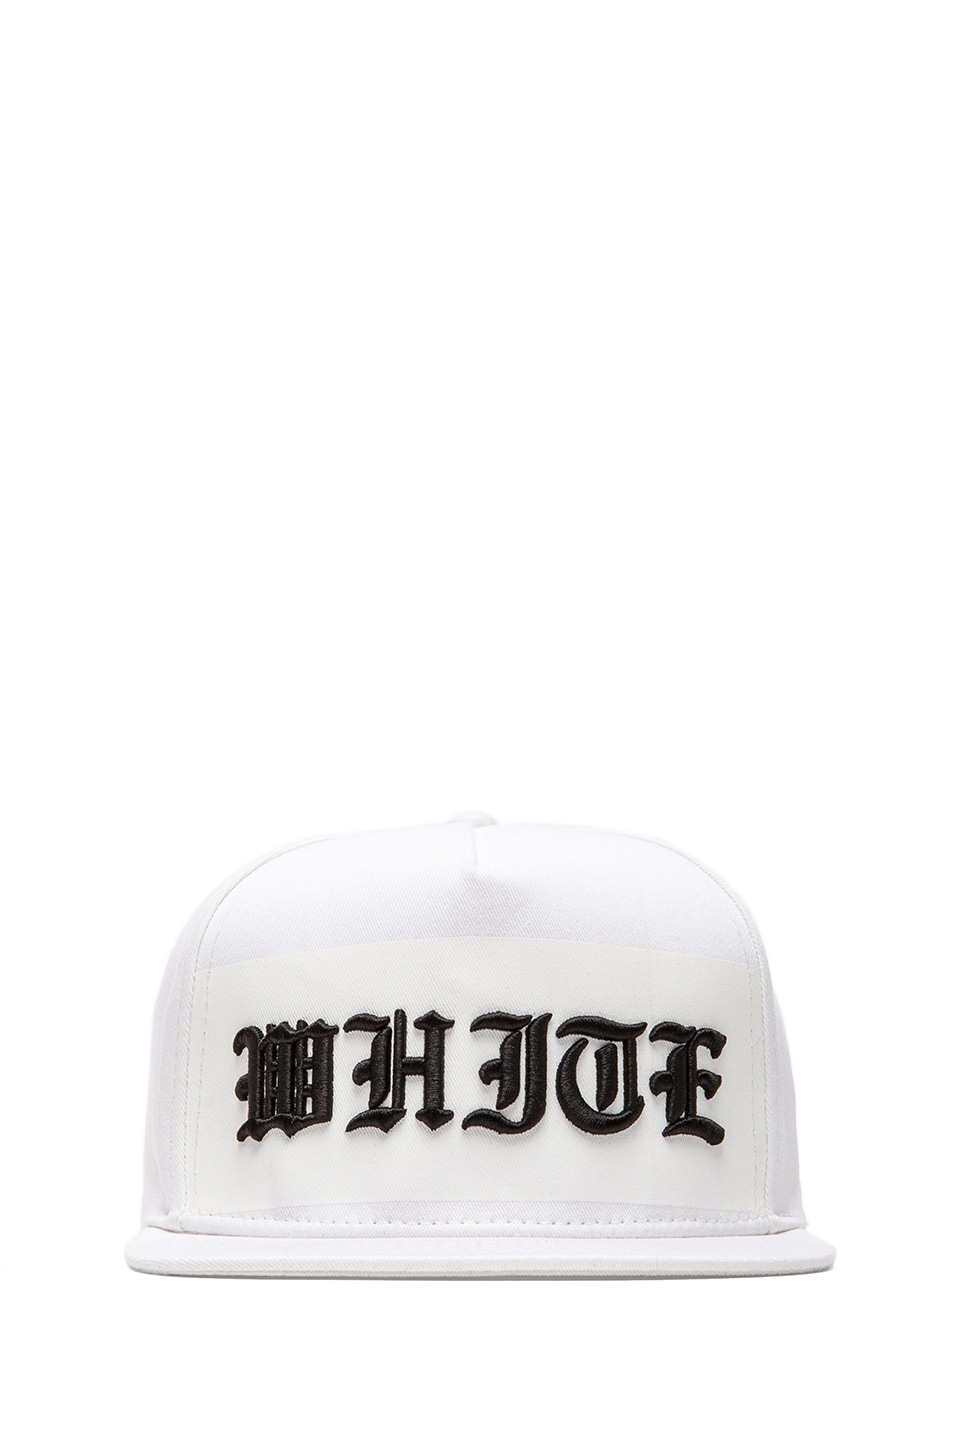 Stampd White on White Hat in White